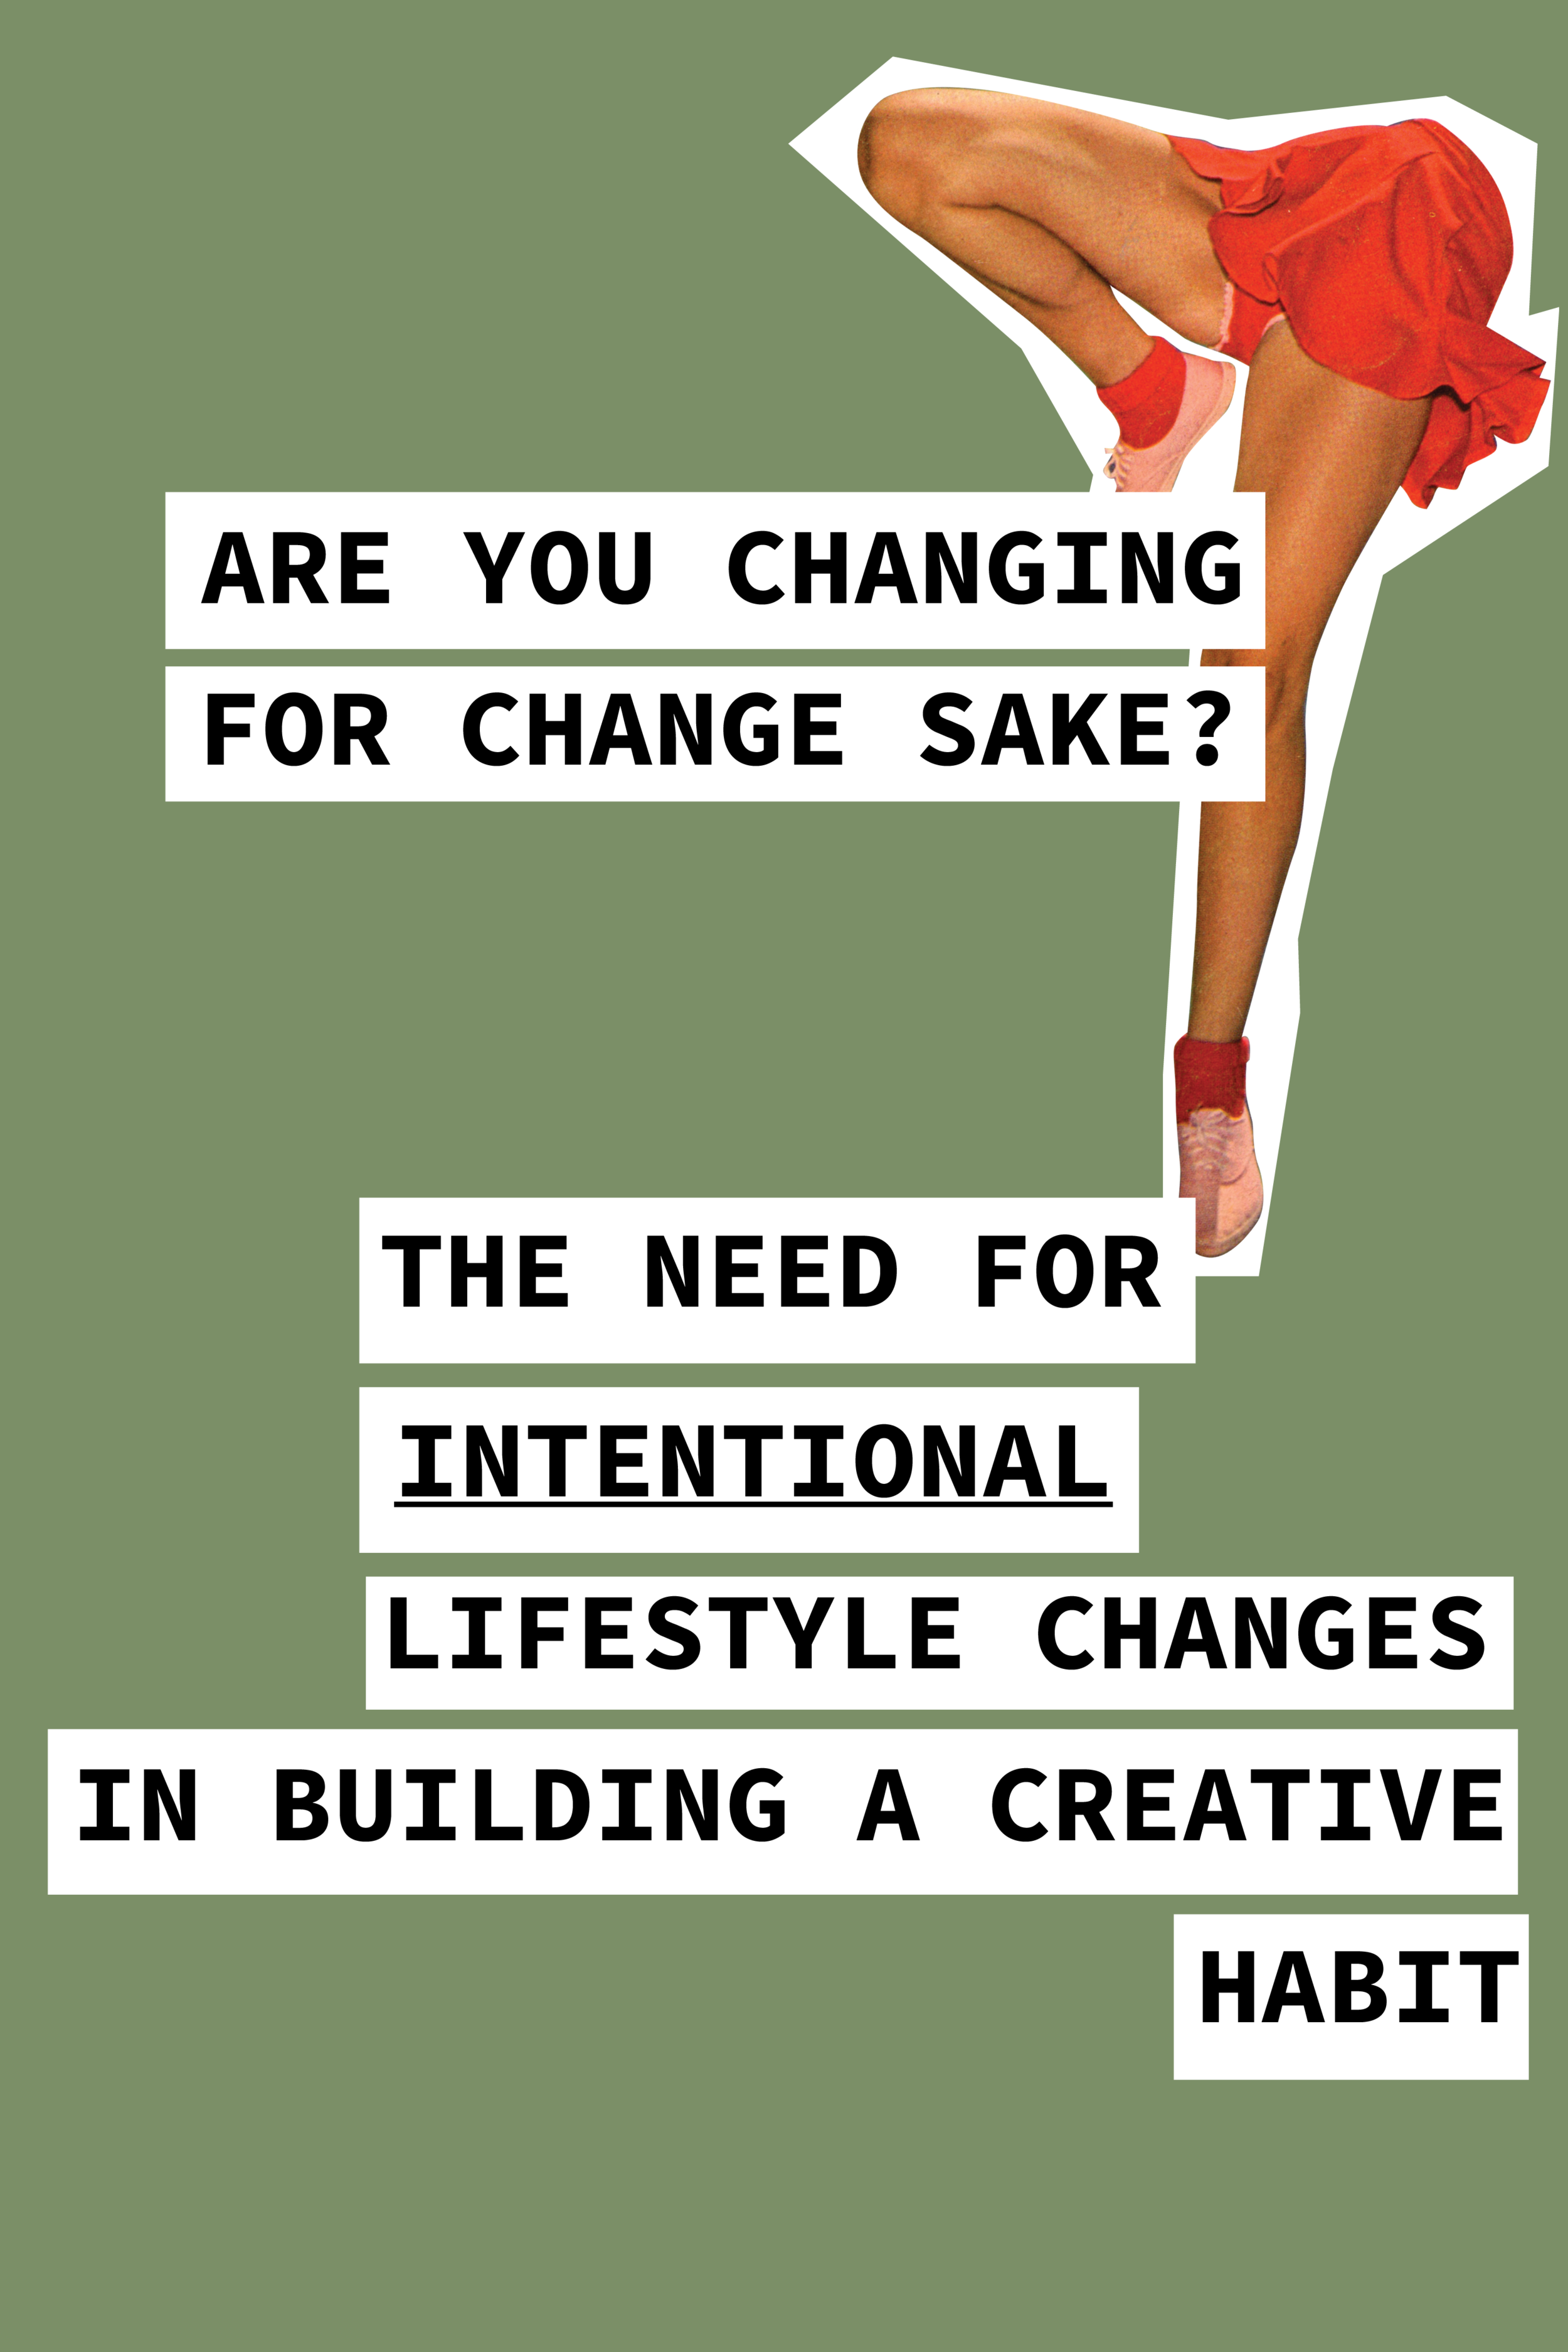 The Need For Intentional Lifestyle Changes In Building A Creative Habit